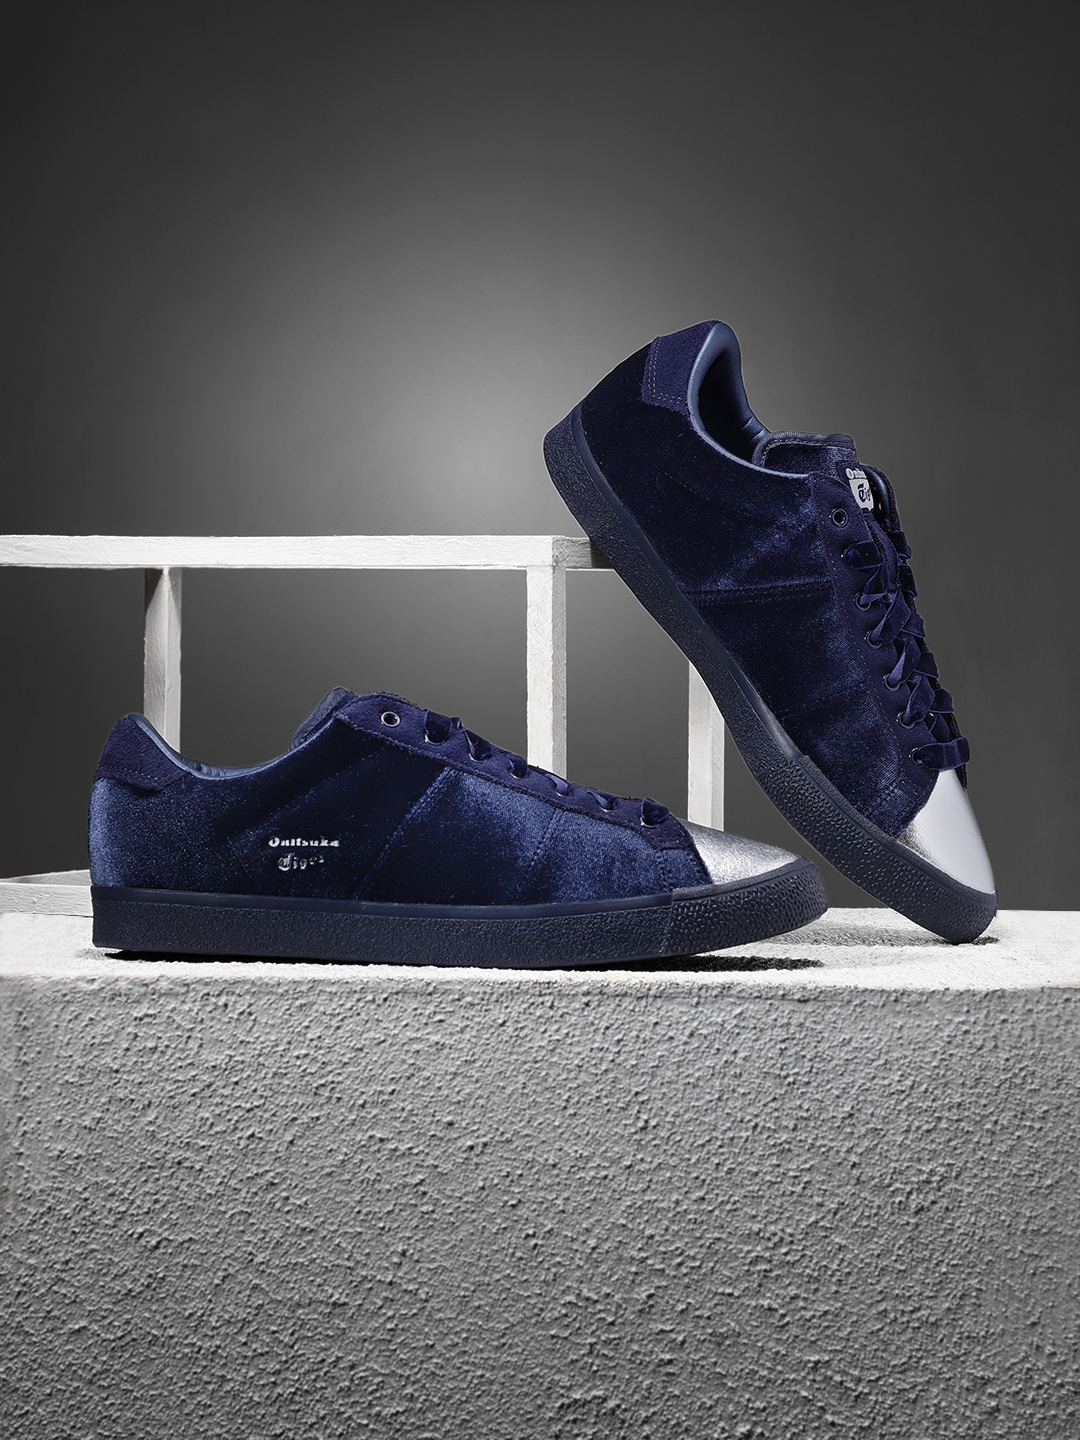 half off 0216a b0508 Onitsuka Tiger Women Navy Blue Lawnship Sneakers